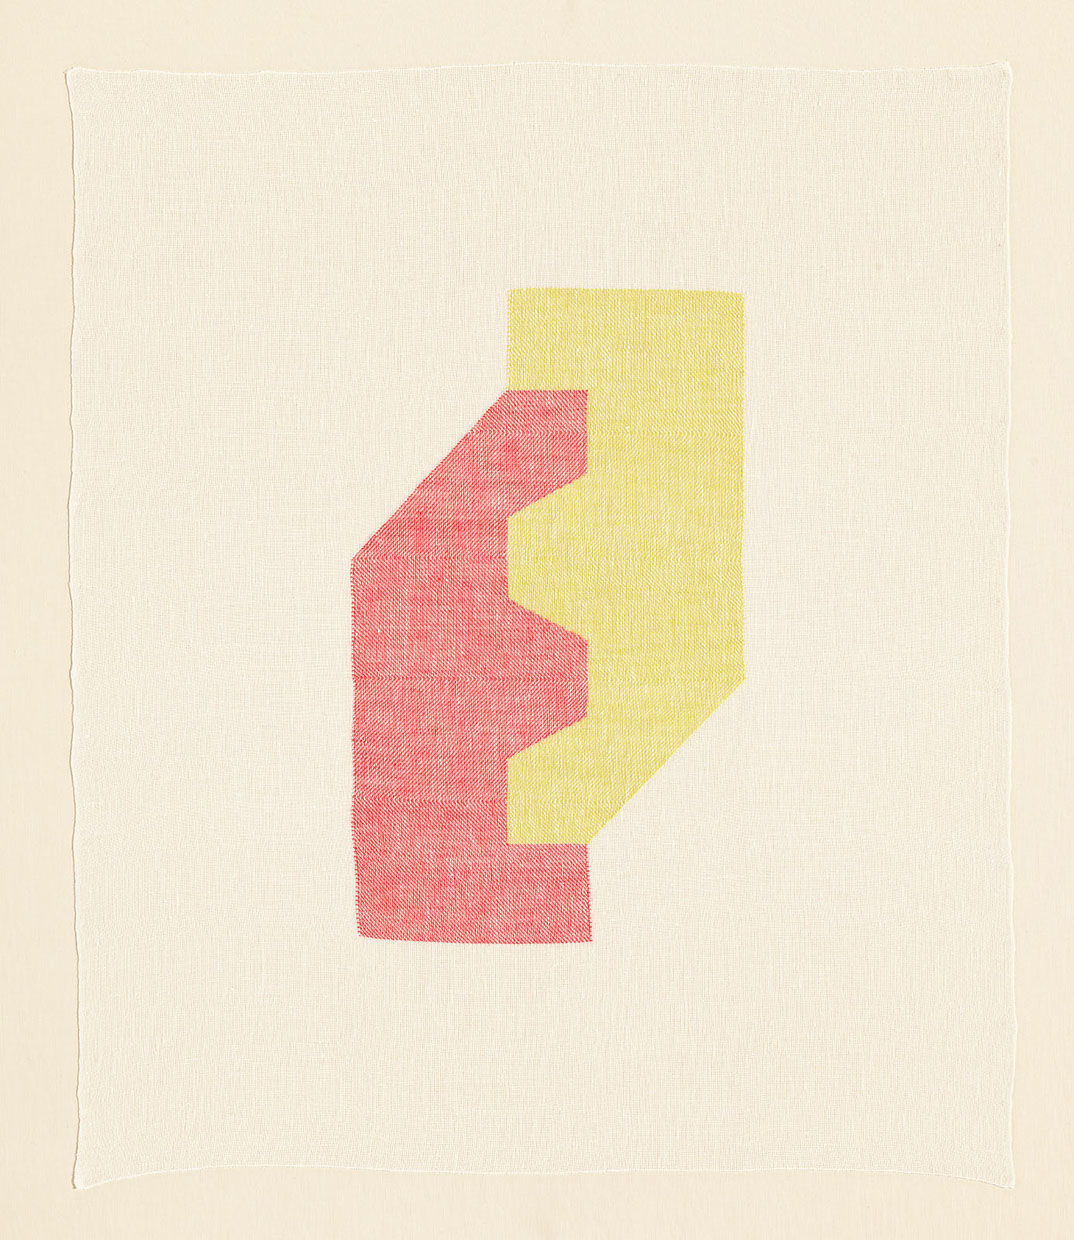 Ruth Laskey, Twill Series (Coral Pink/Lemon Curd), 2016, hand-woven and hand-dyed linen, 29.5x25 inches